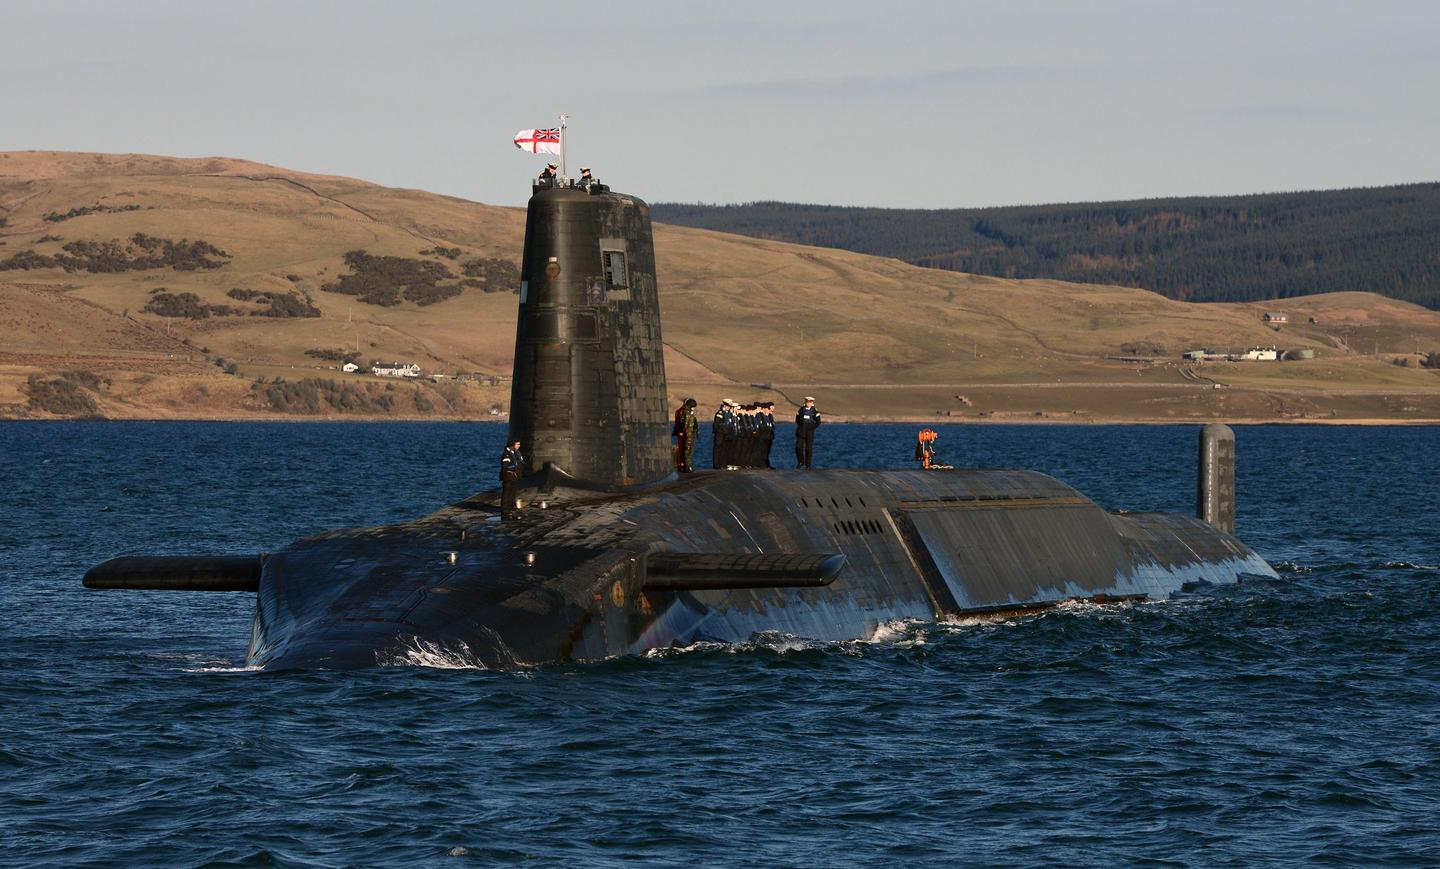 The data was gathered by Royal Navy submarines, such as HMS Victorious (Image: Ministry of Defence)